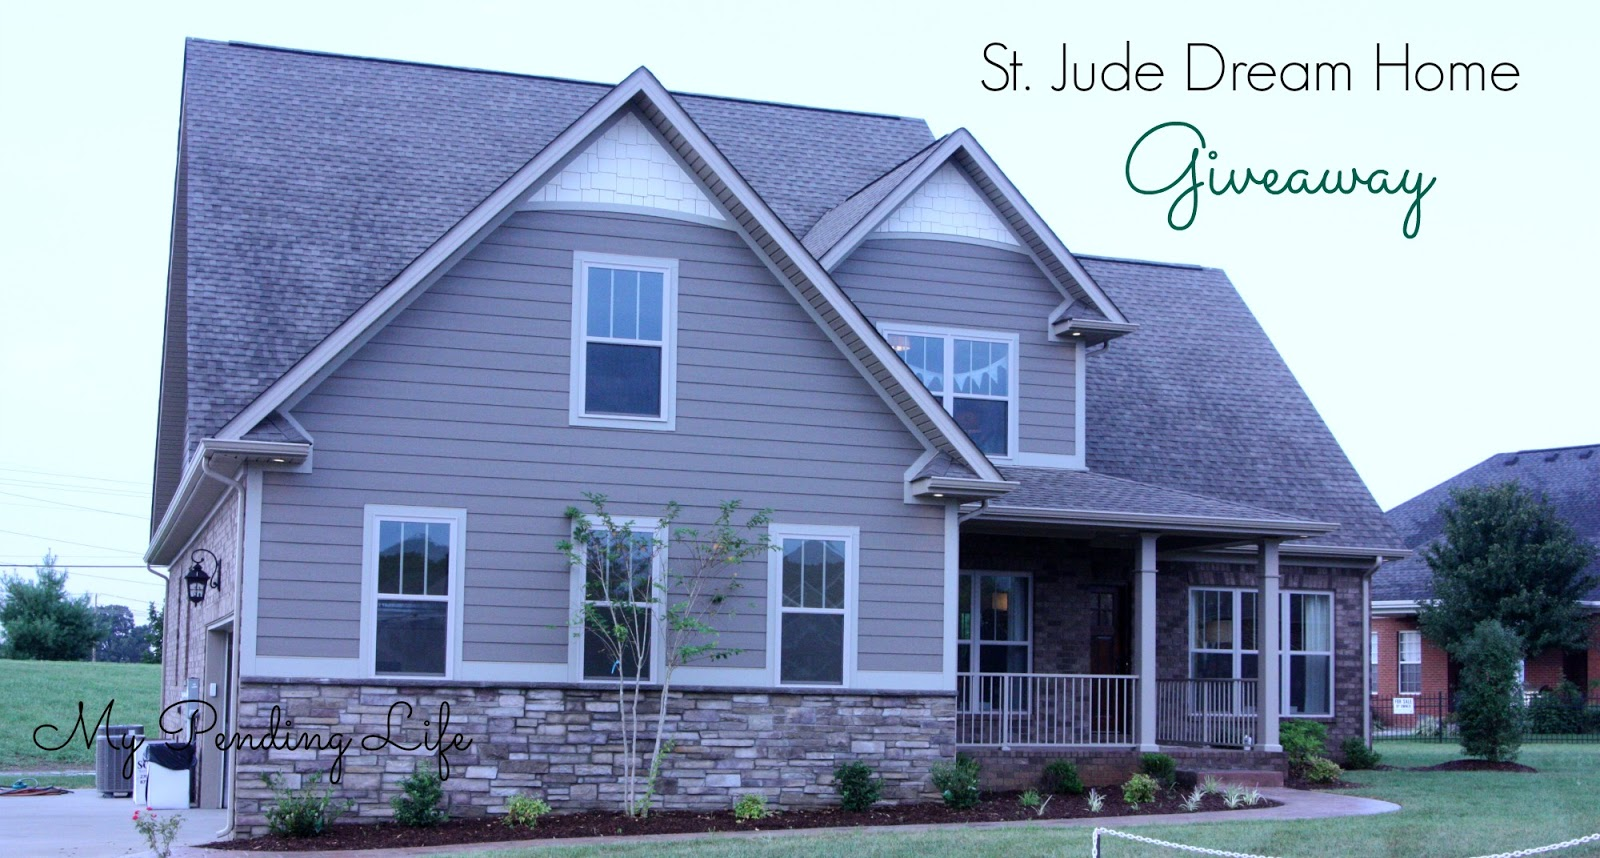 My Pending Life St Jude Dream Home